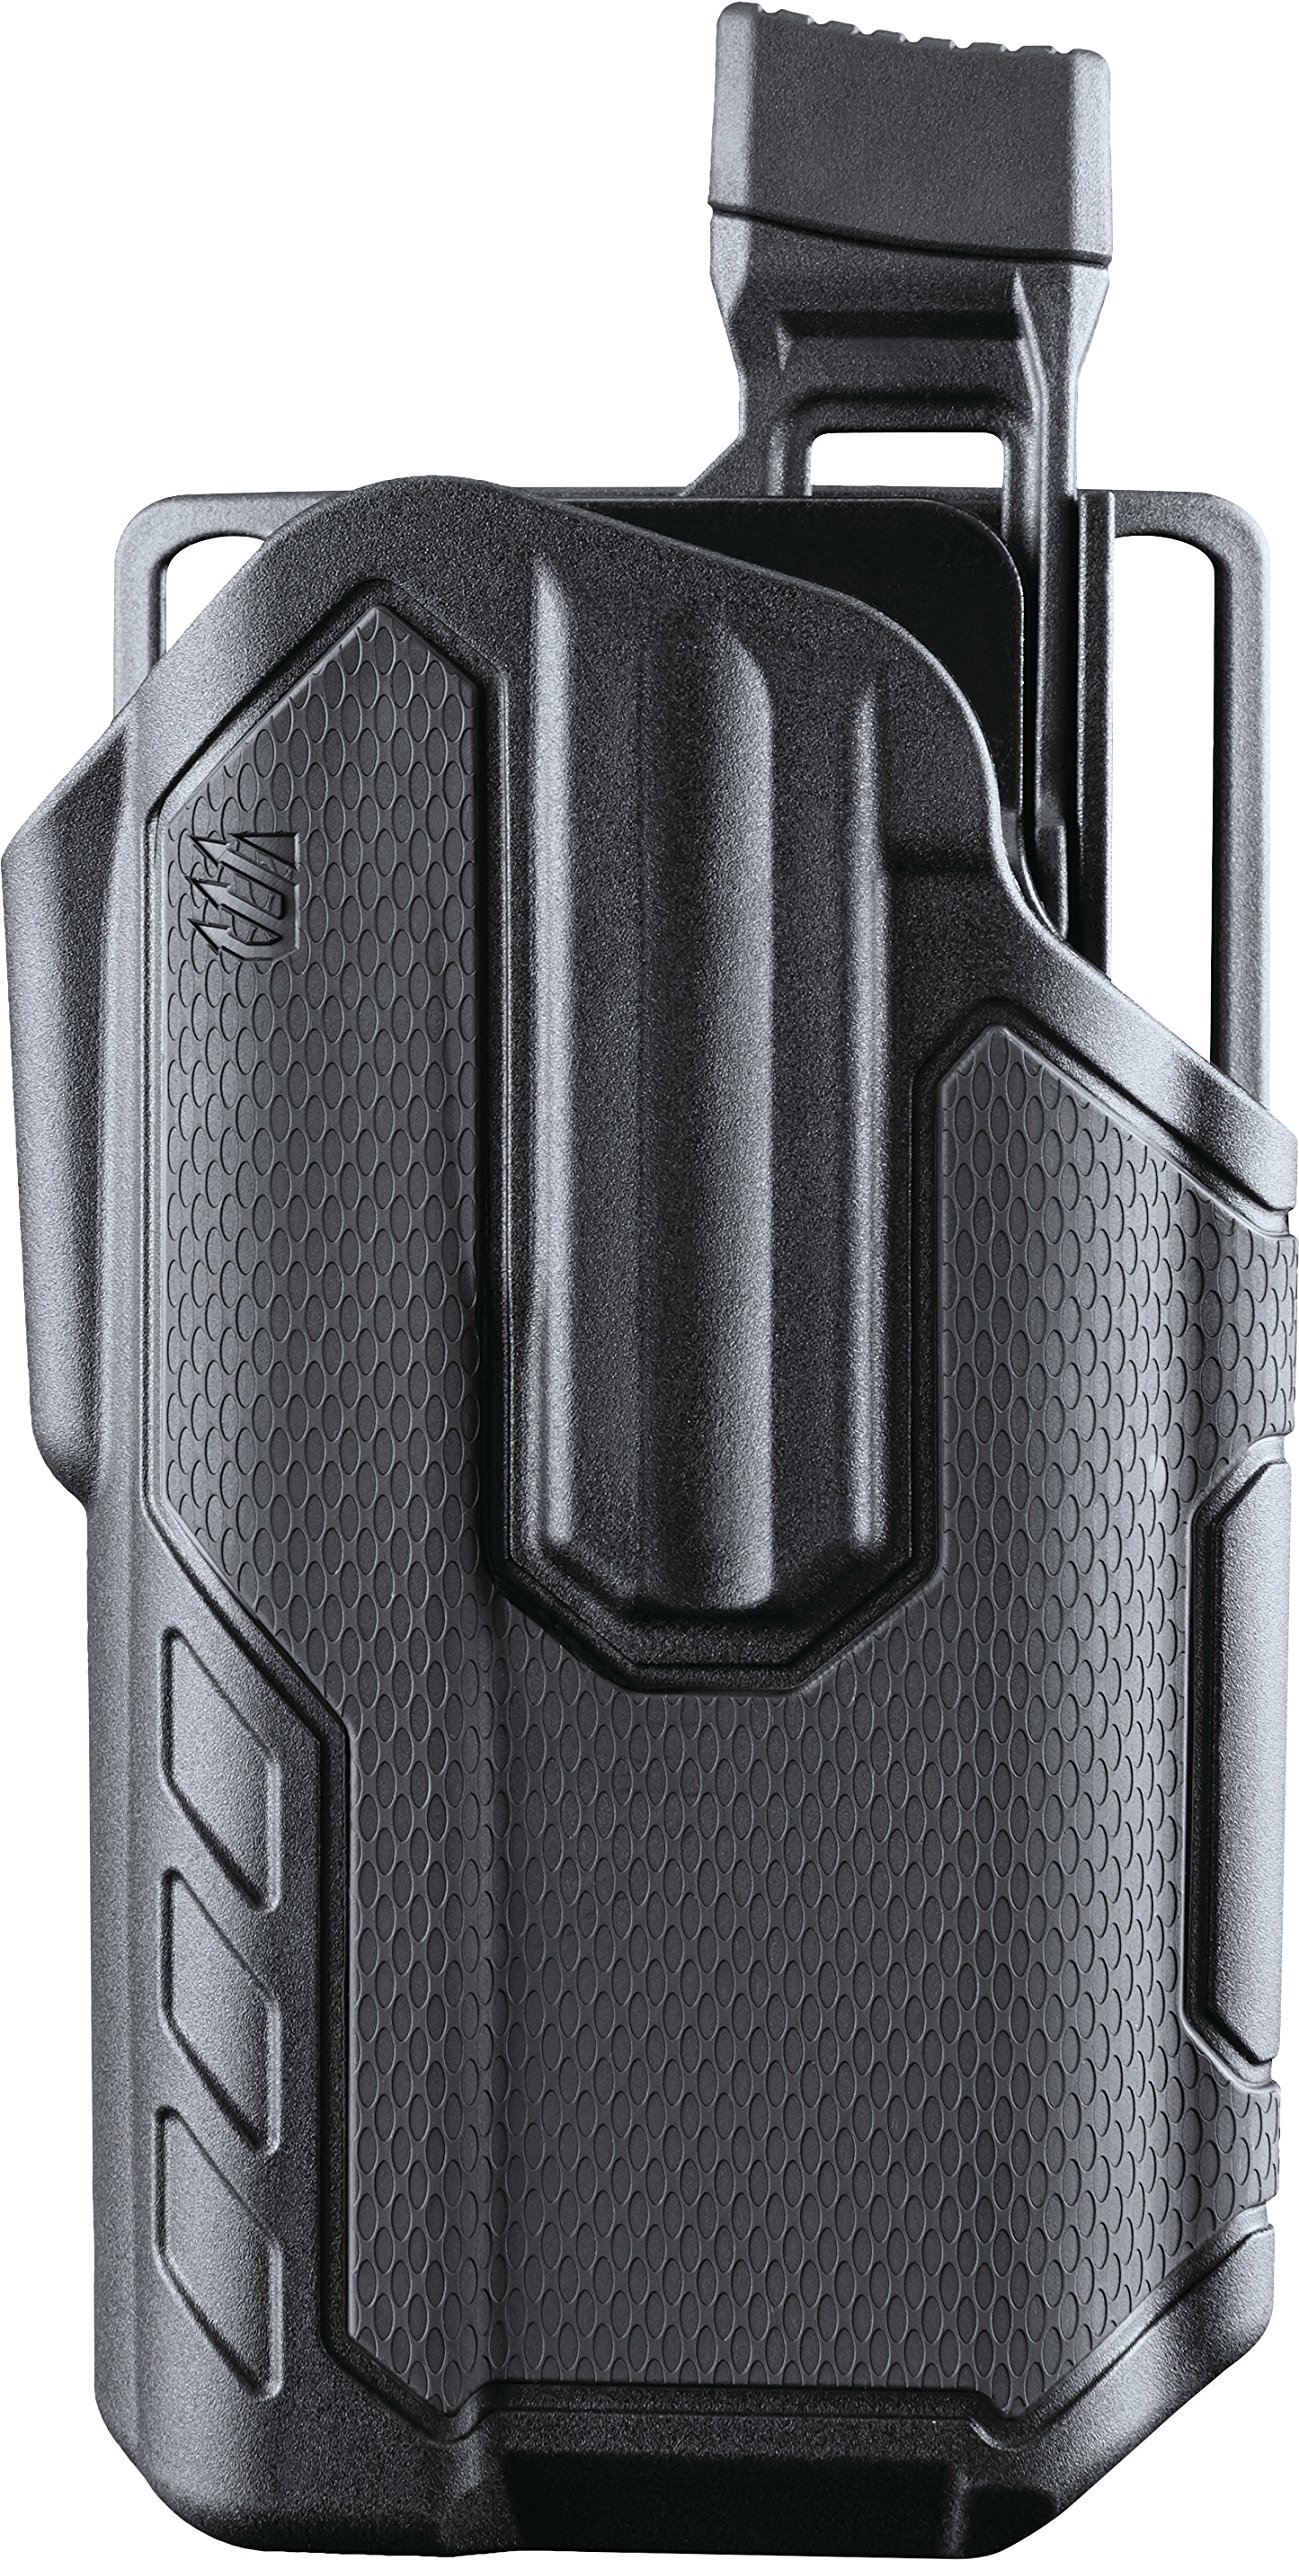 BLACKHAWK! Omnivore MultiFit Holster Omnivore MultiFit Surefire X300 Light Bearing RH BK, Black, One Size by BLACKHAWK!